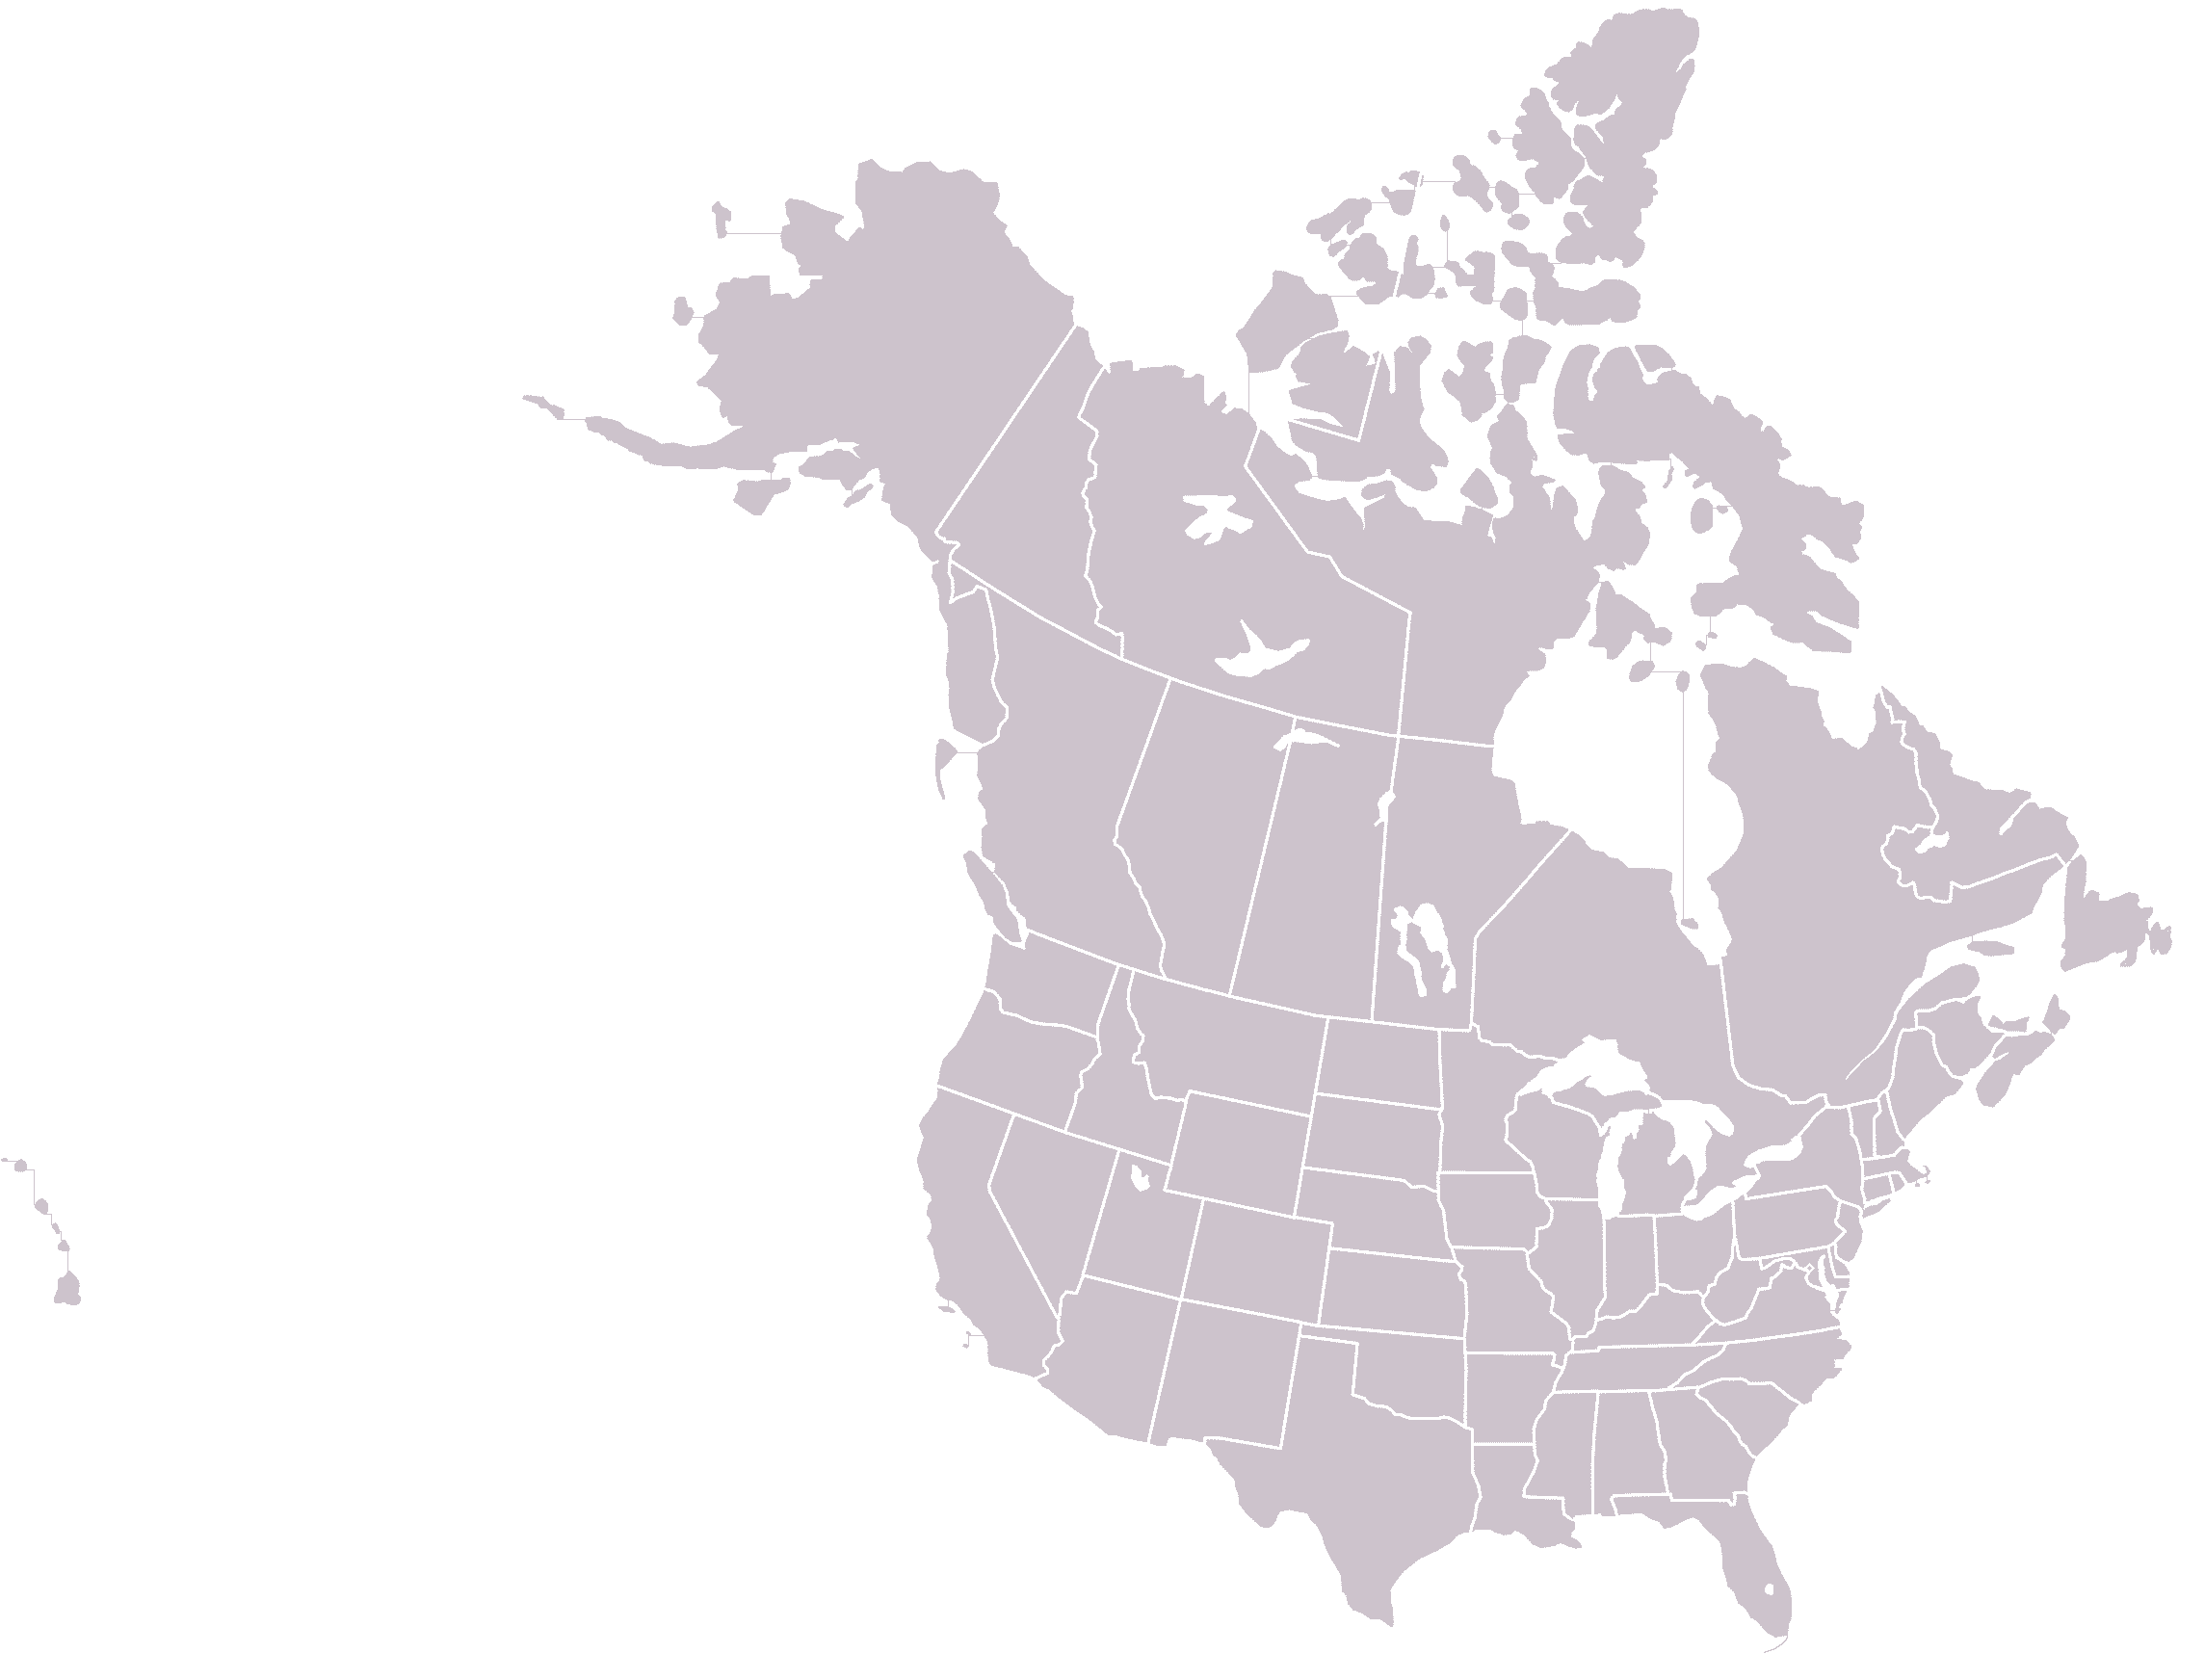 FileSIJHL CanadaUS Mappng Wikipedia - Map of us states and canada